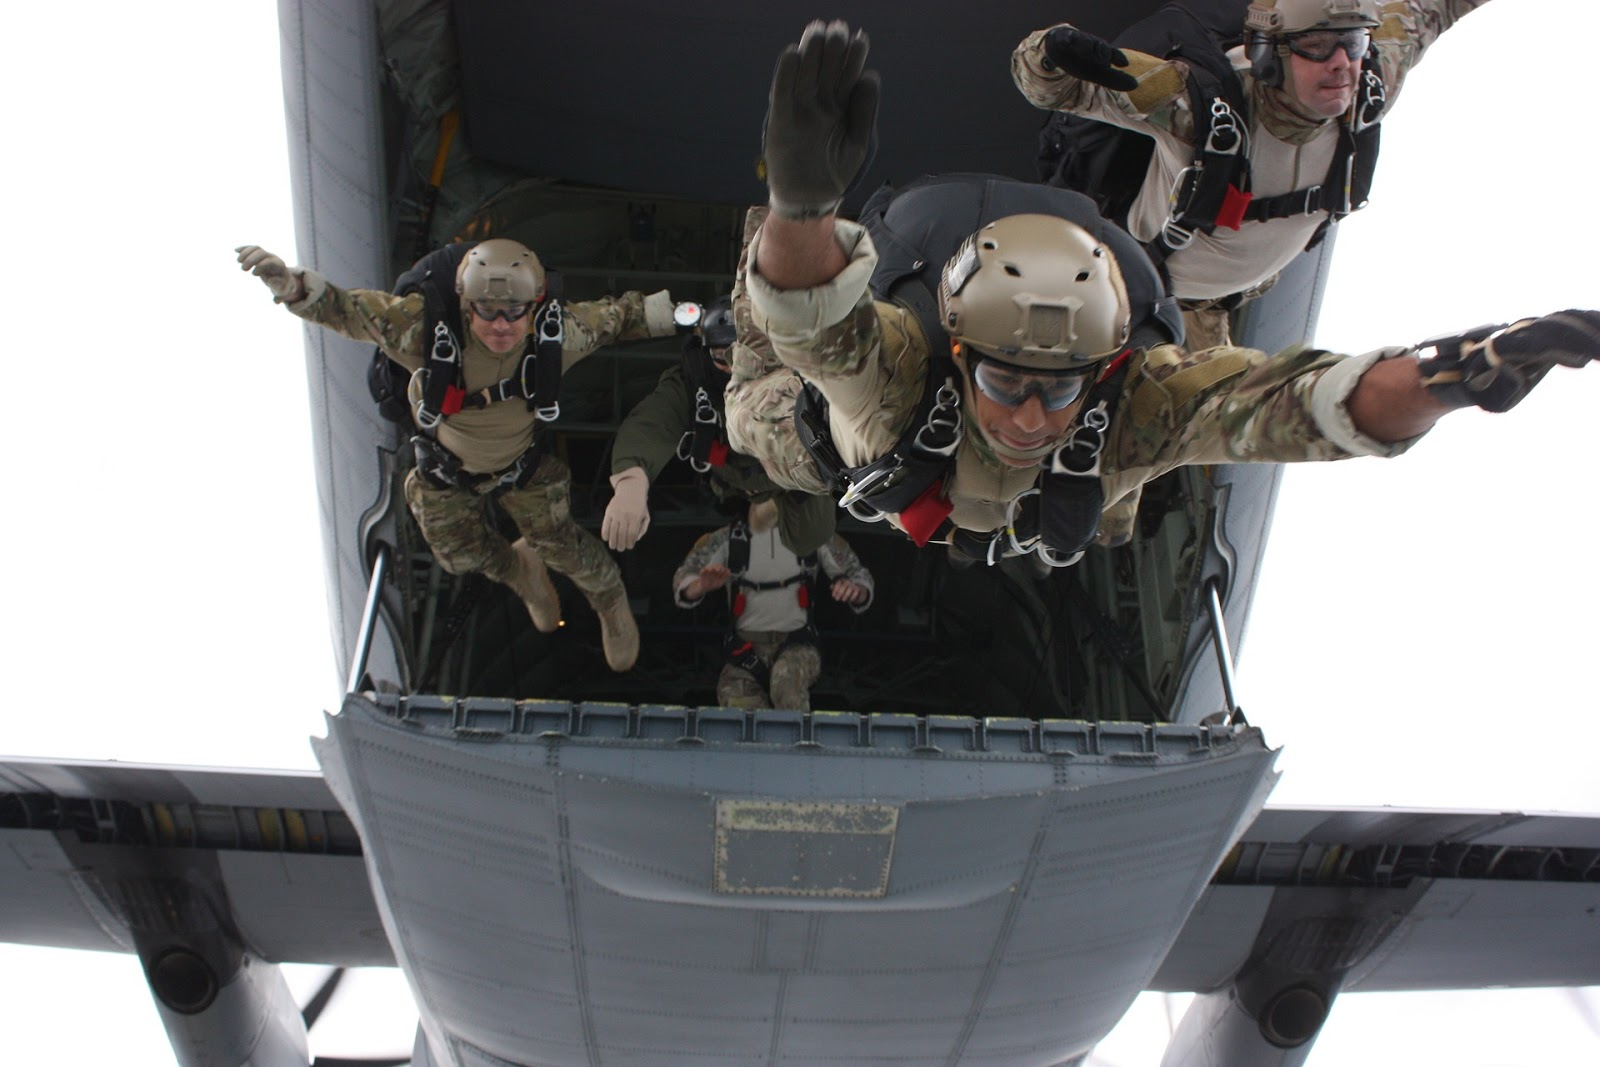 Navy SEALs parachuting out of an airplane to illustrate blog post about navy SEAL training